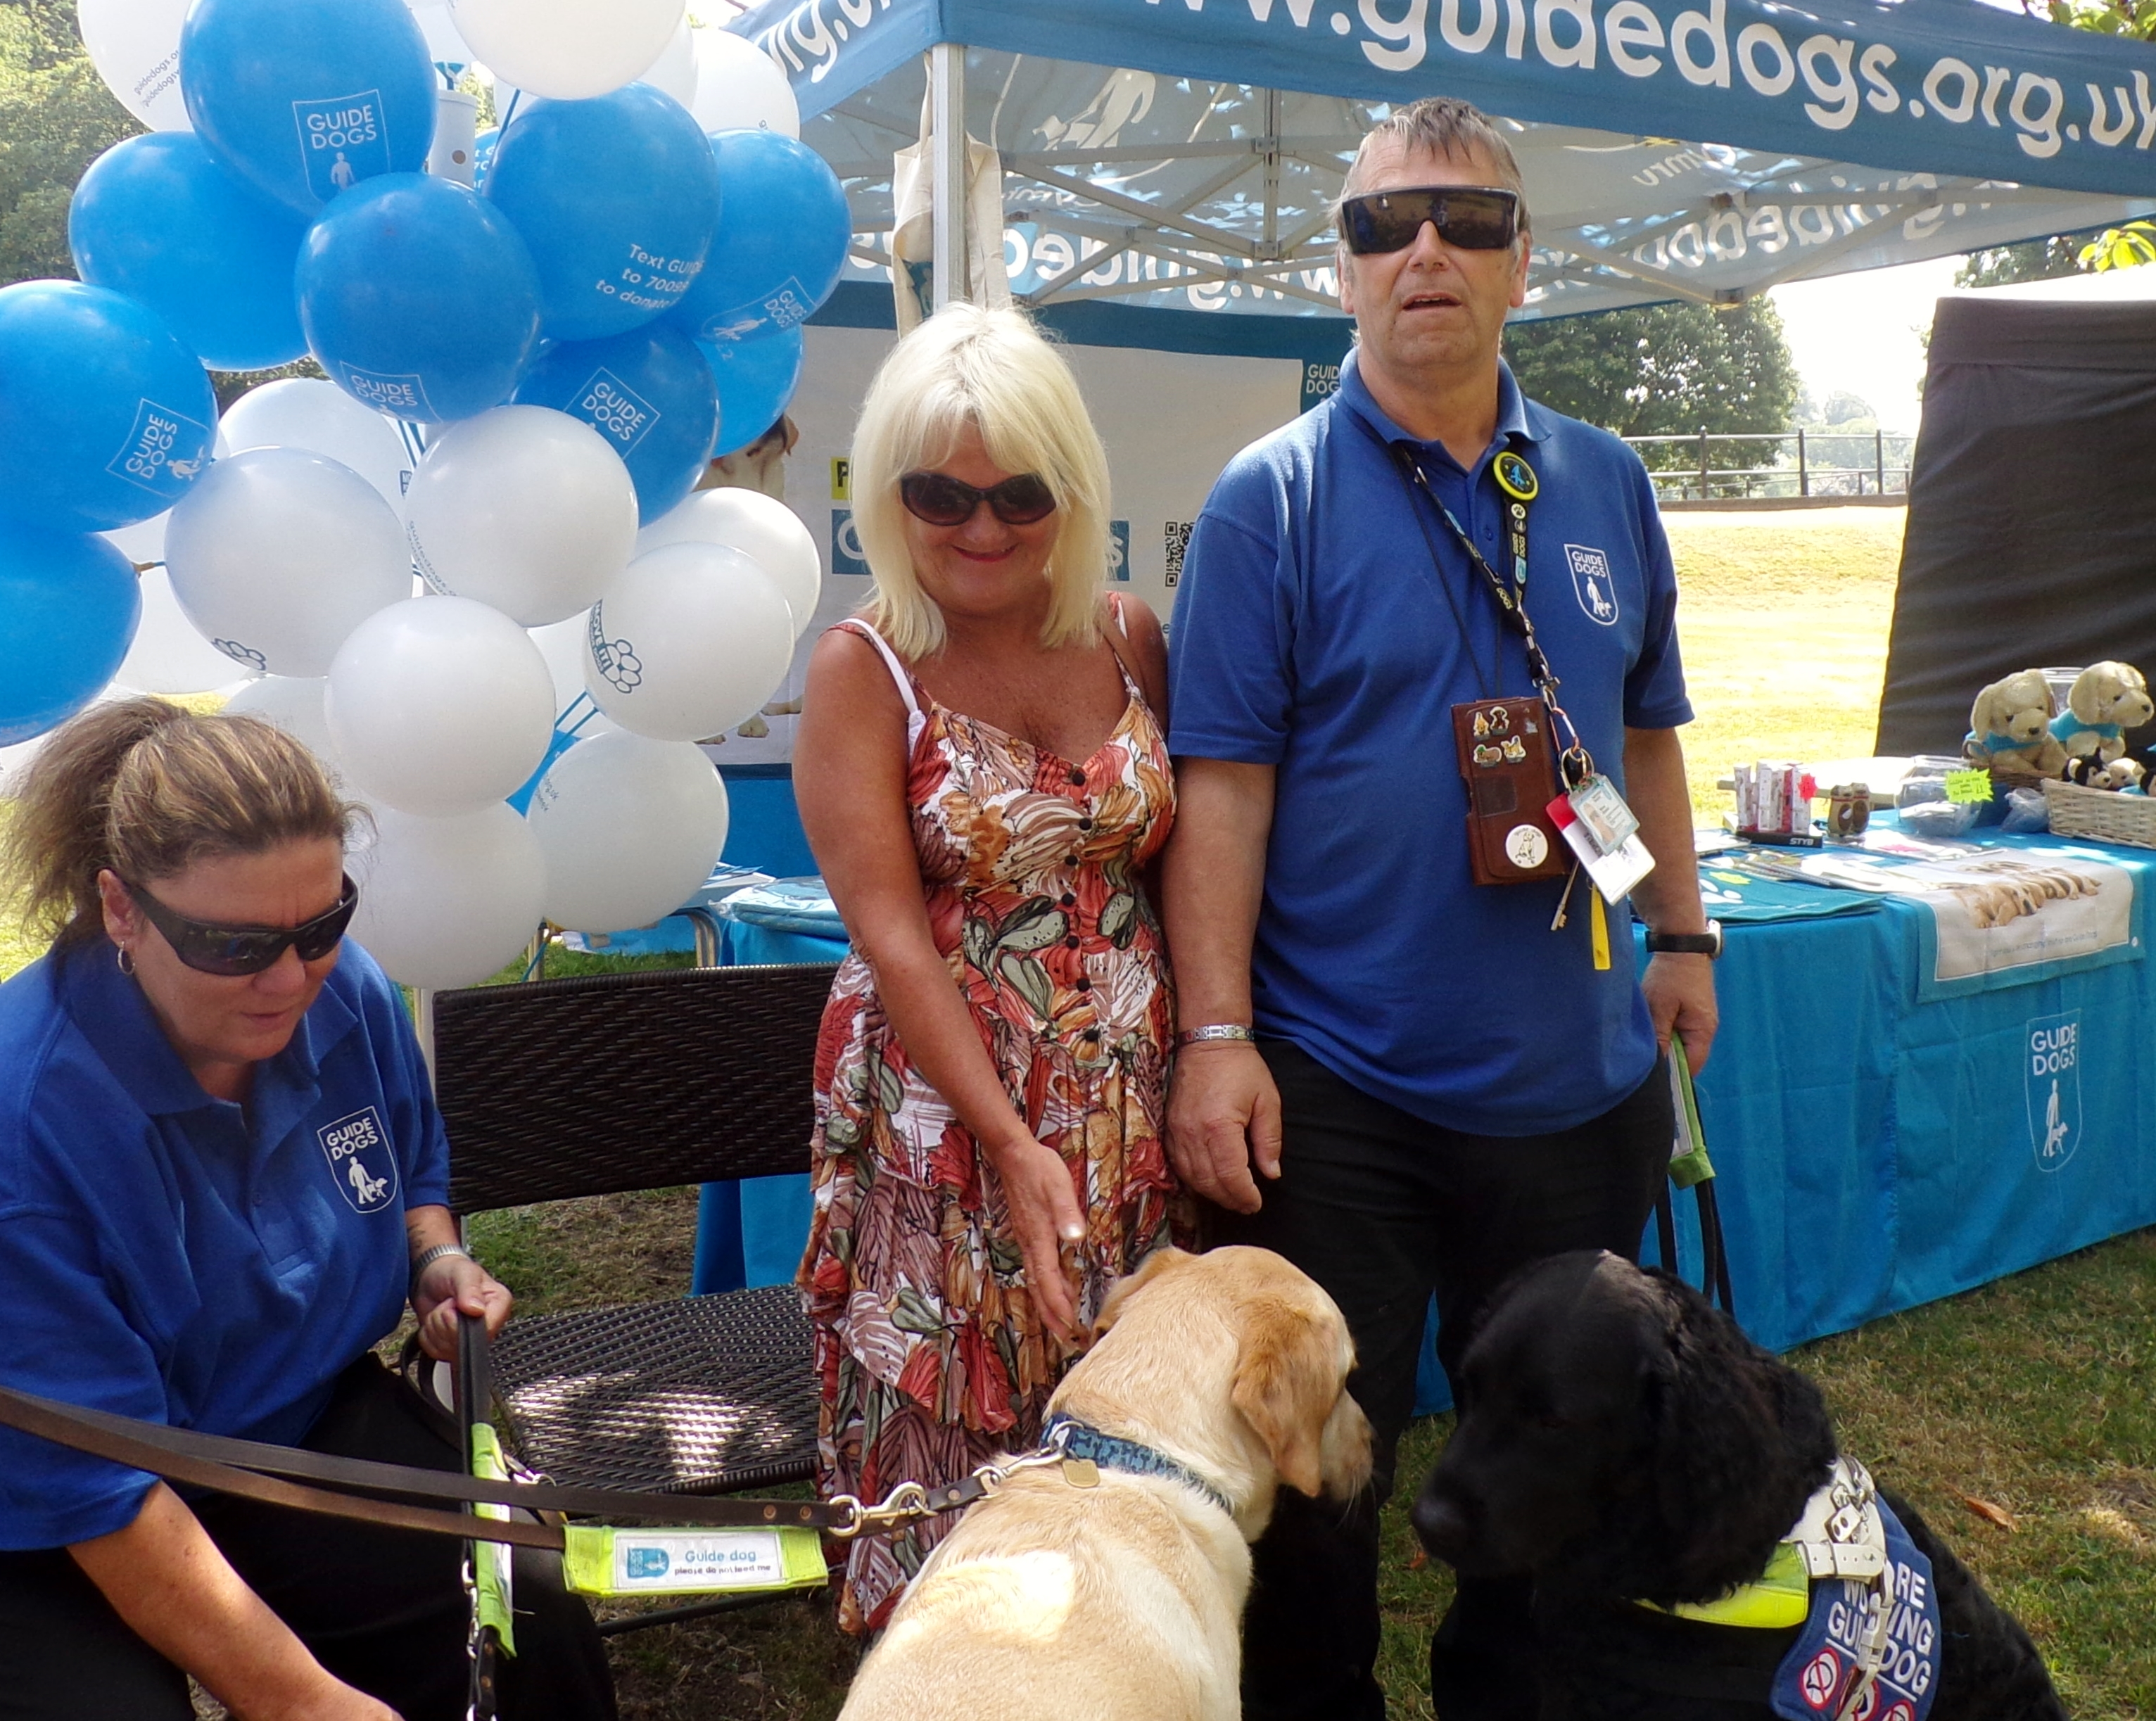 cllr james at the guide dog stand